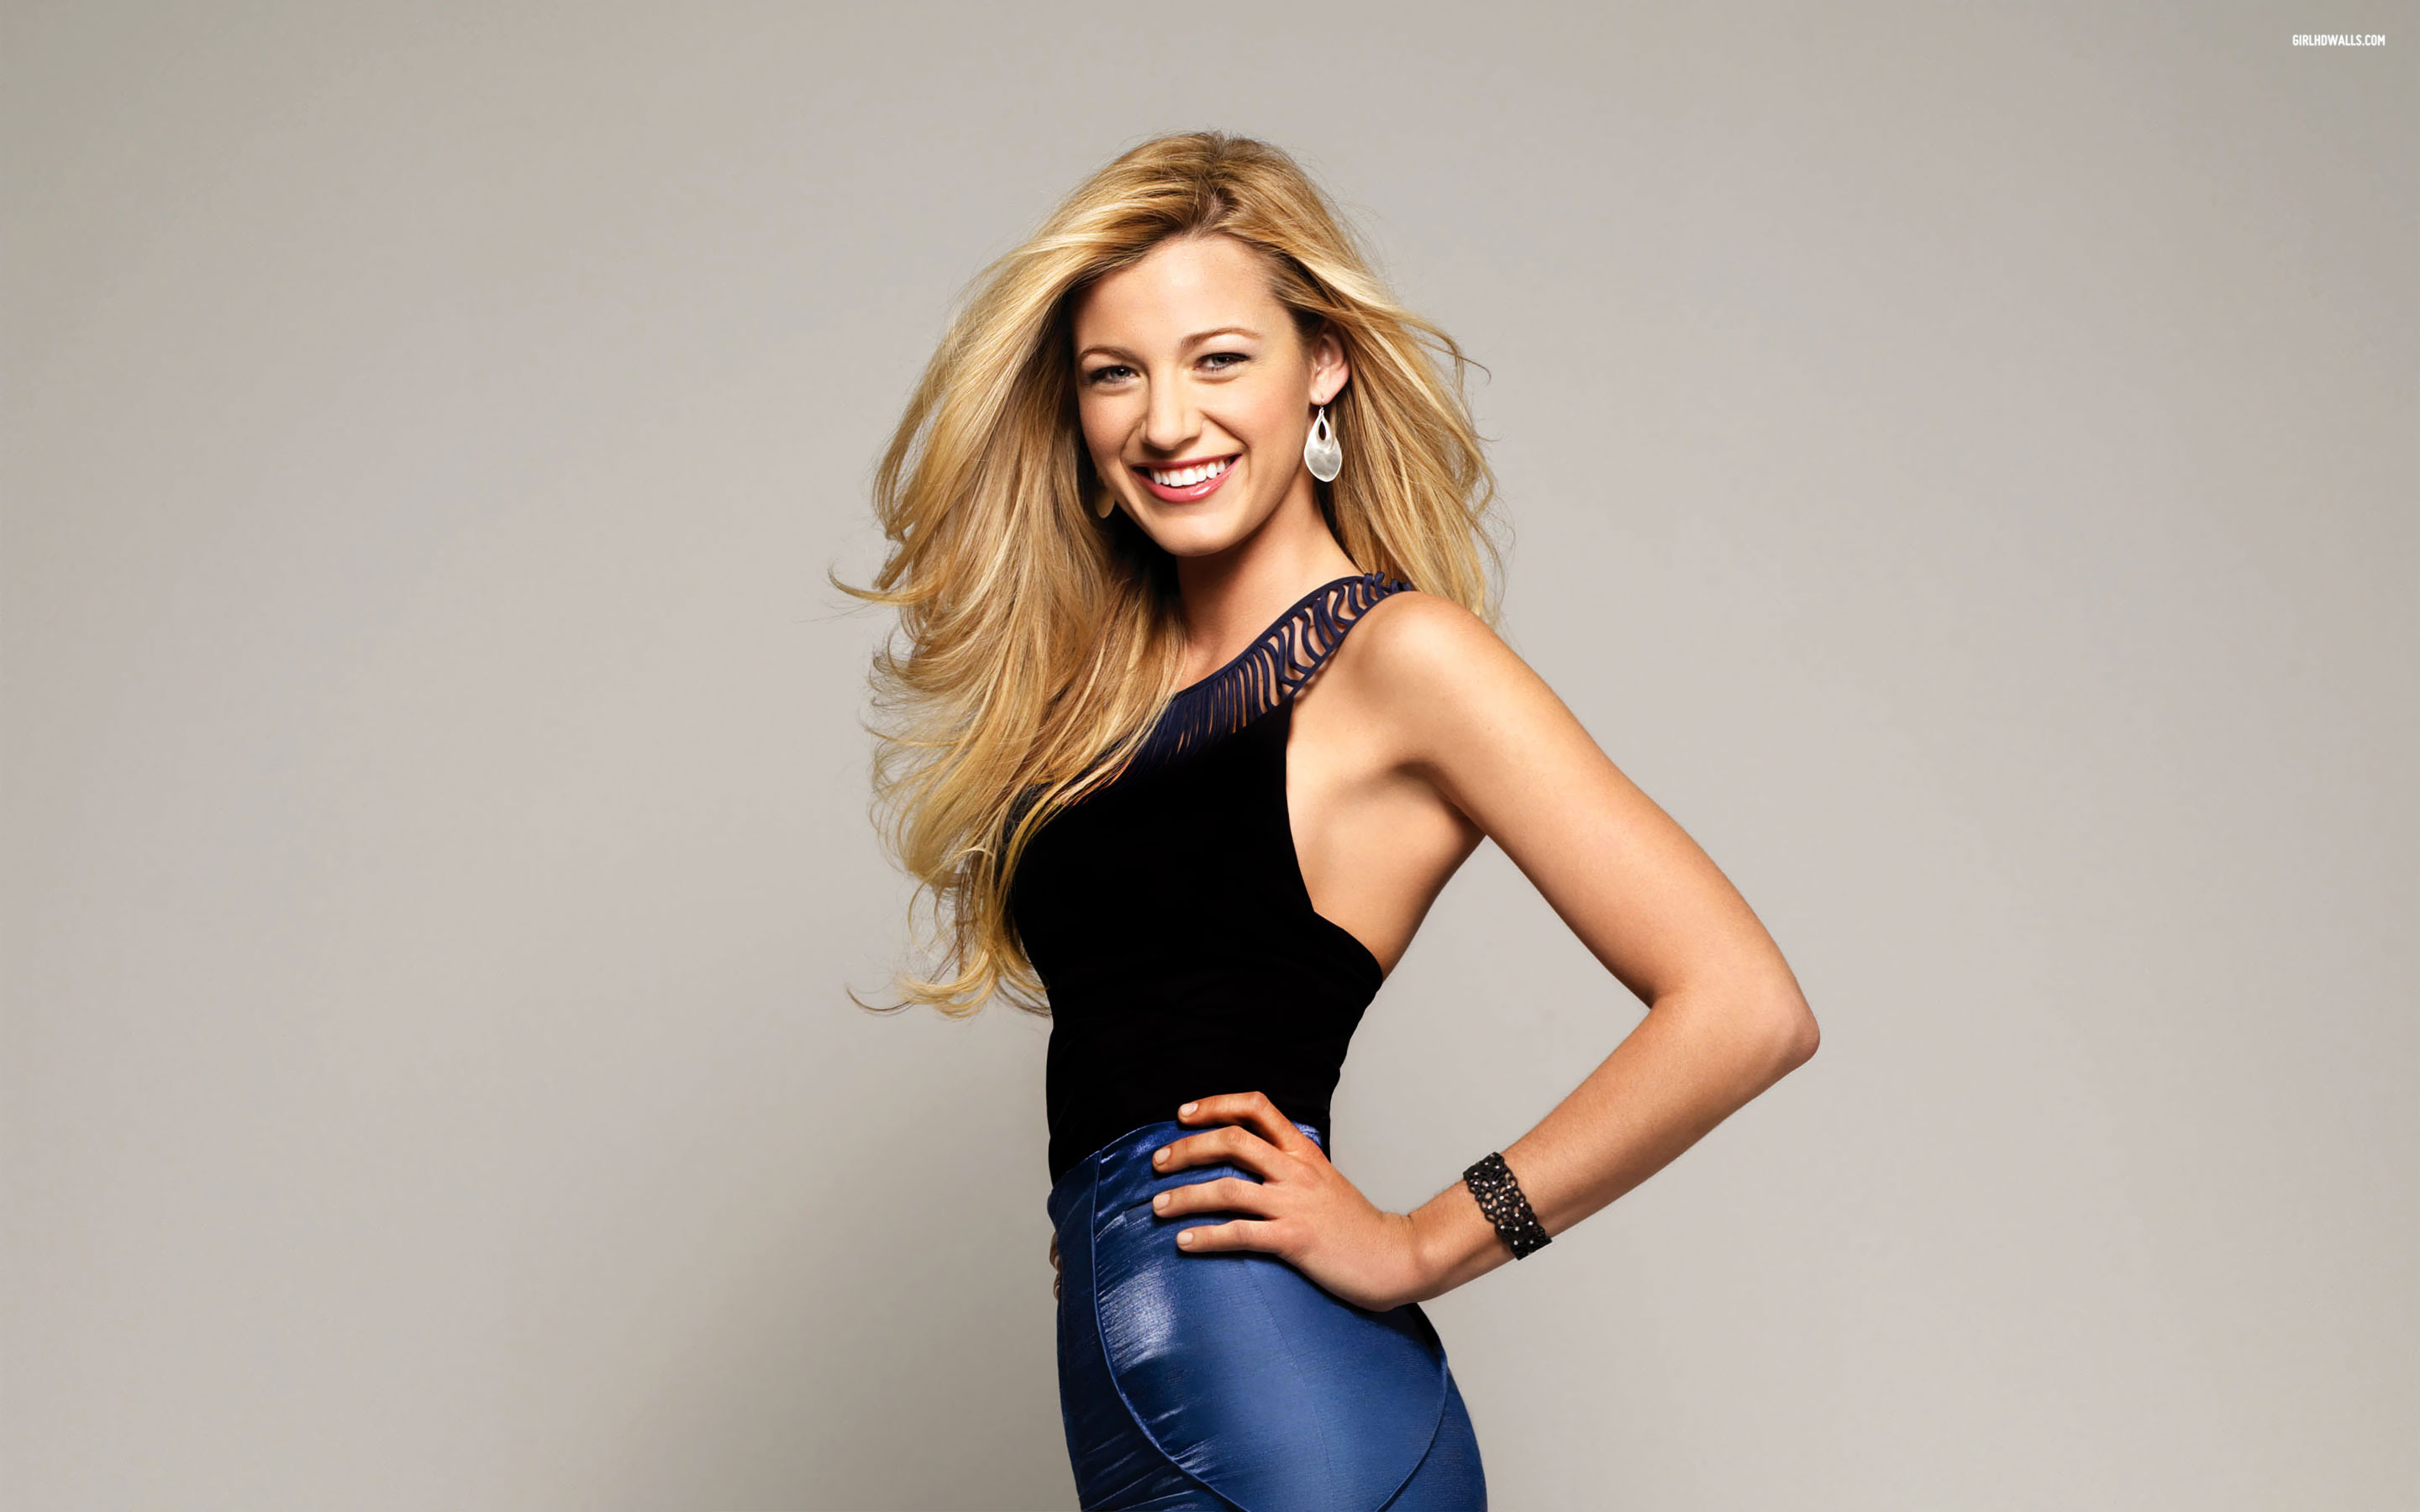 2880x1800 - Blake Lively Wallpapers 30